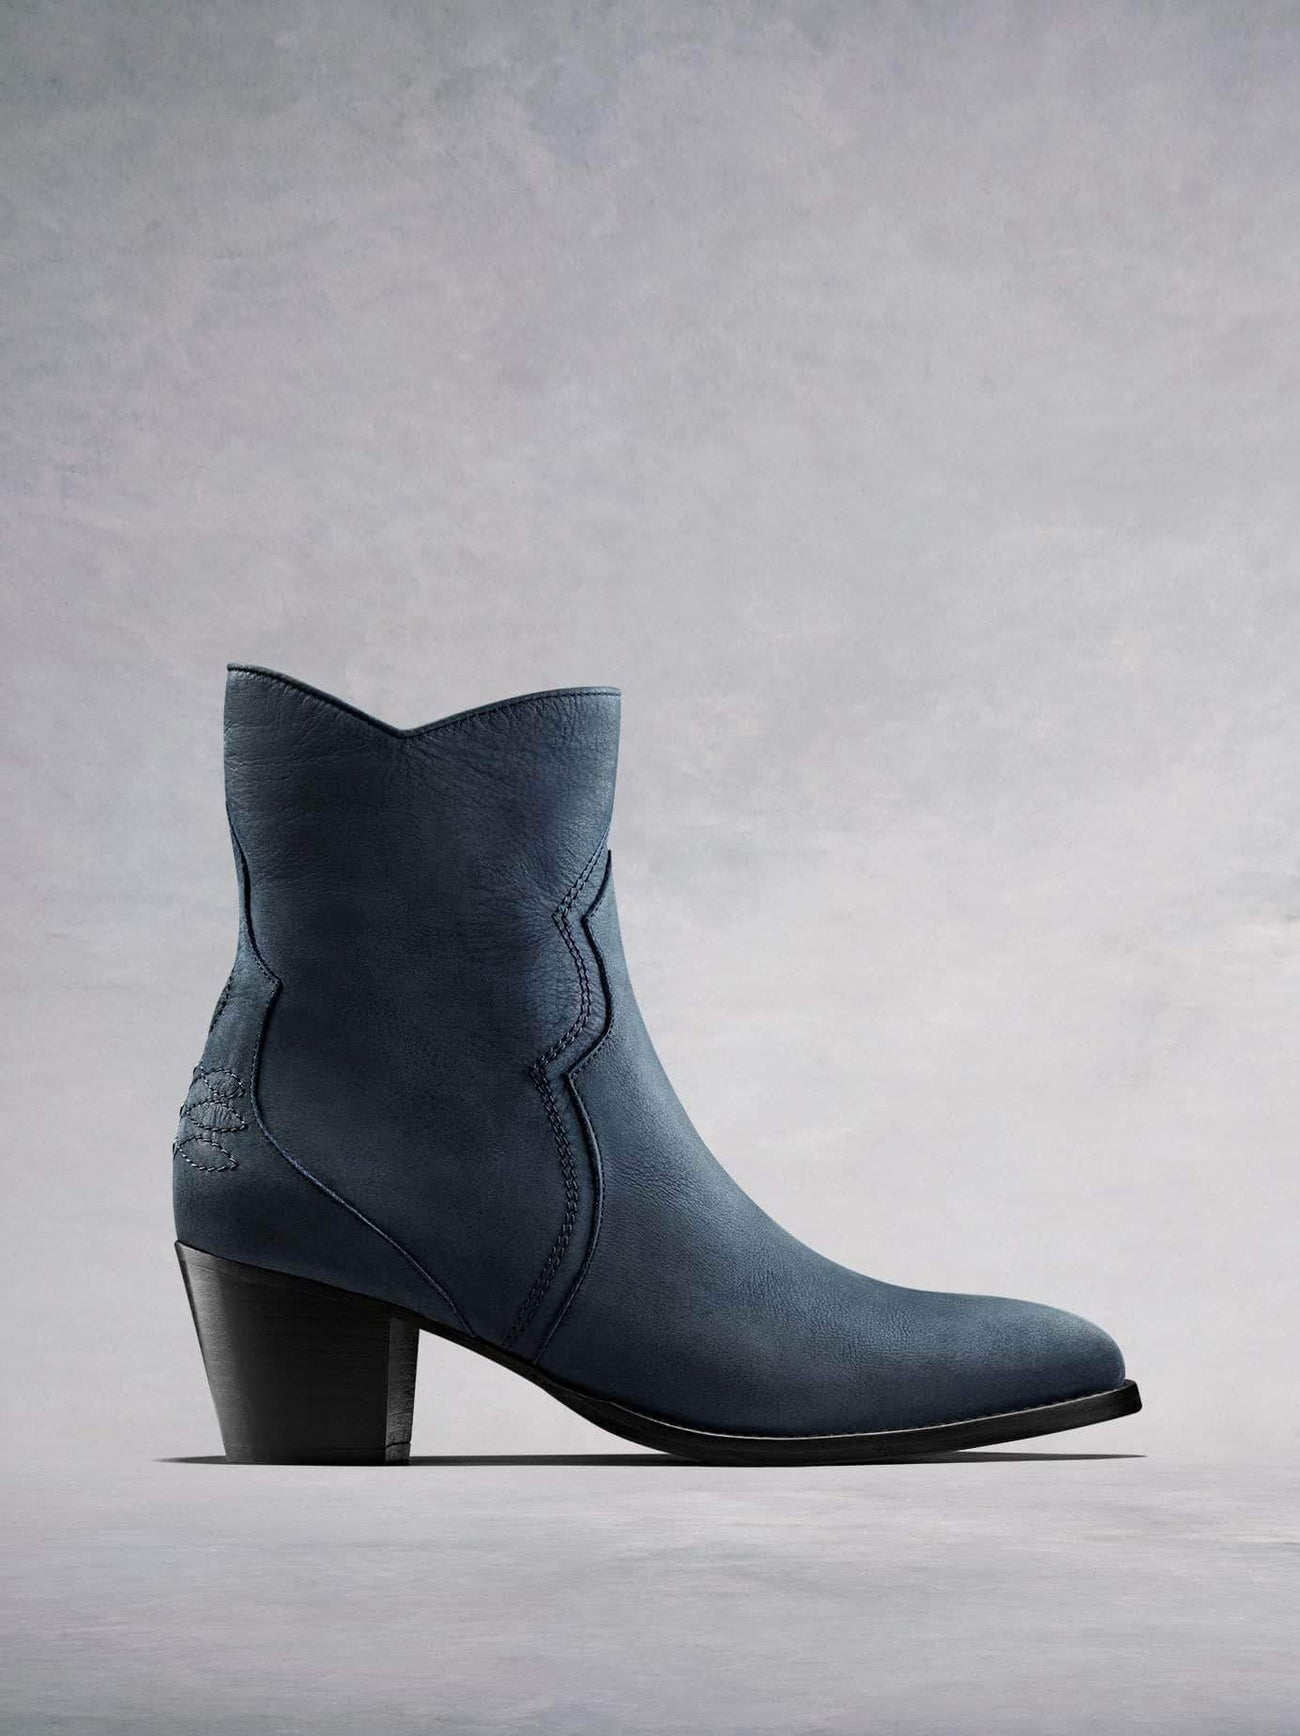 Channel the Western trend with our Bexley petrol blue nubuck leather ankle boot. Available in our standard or wide fit.